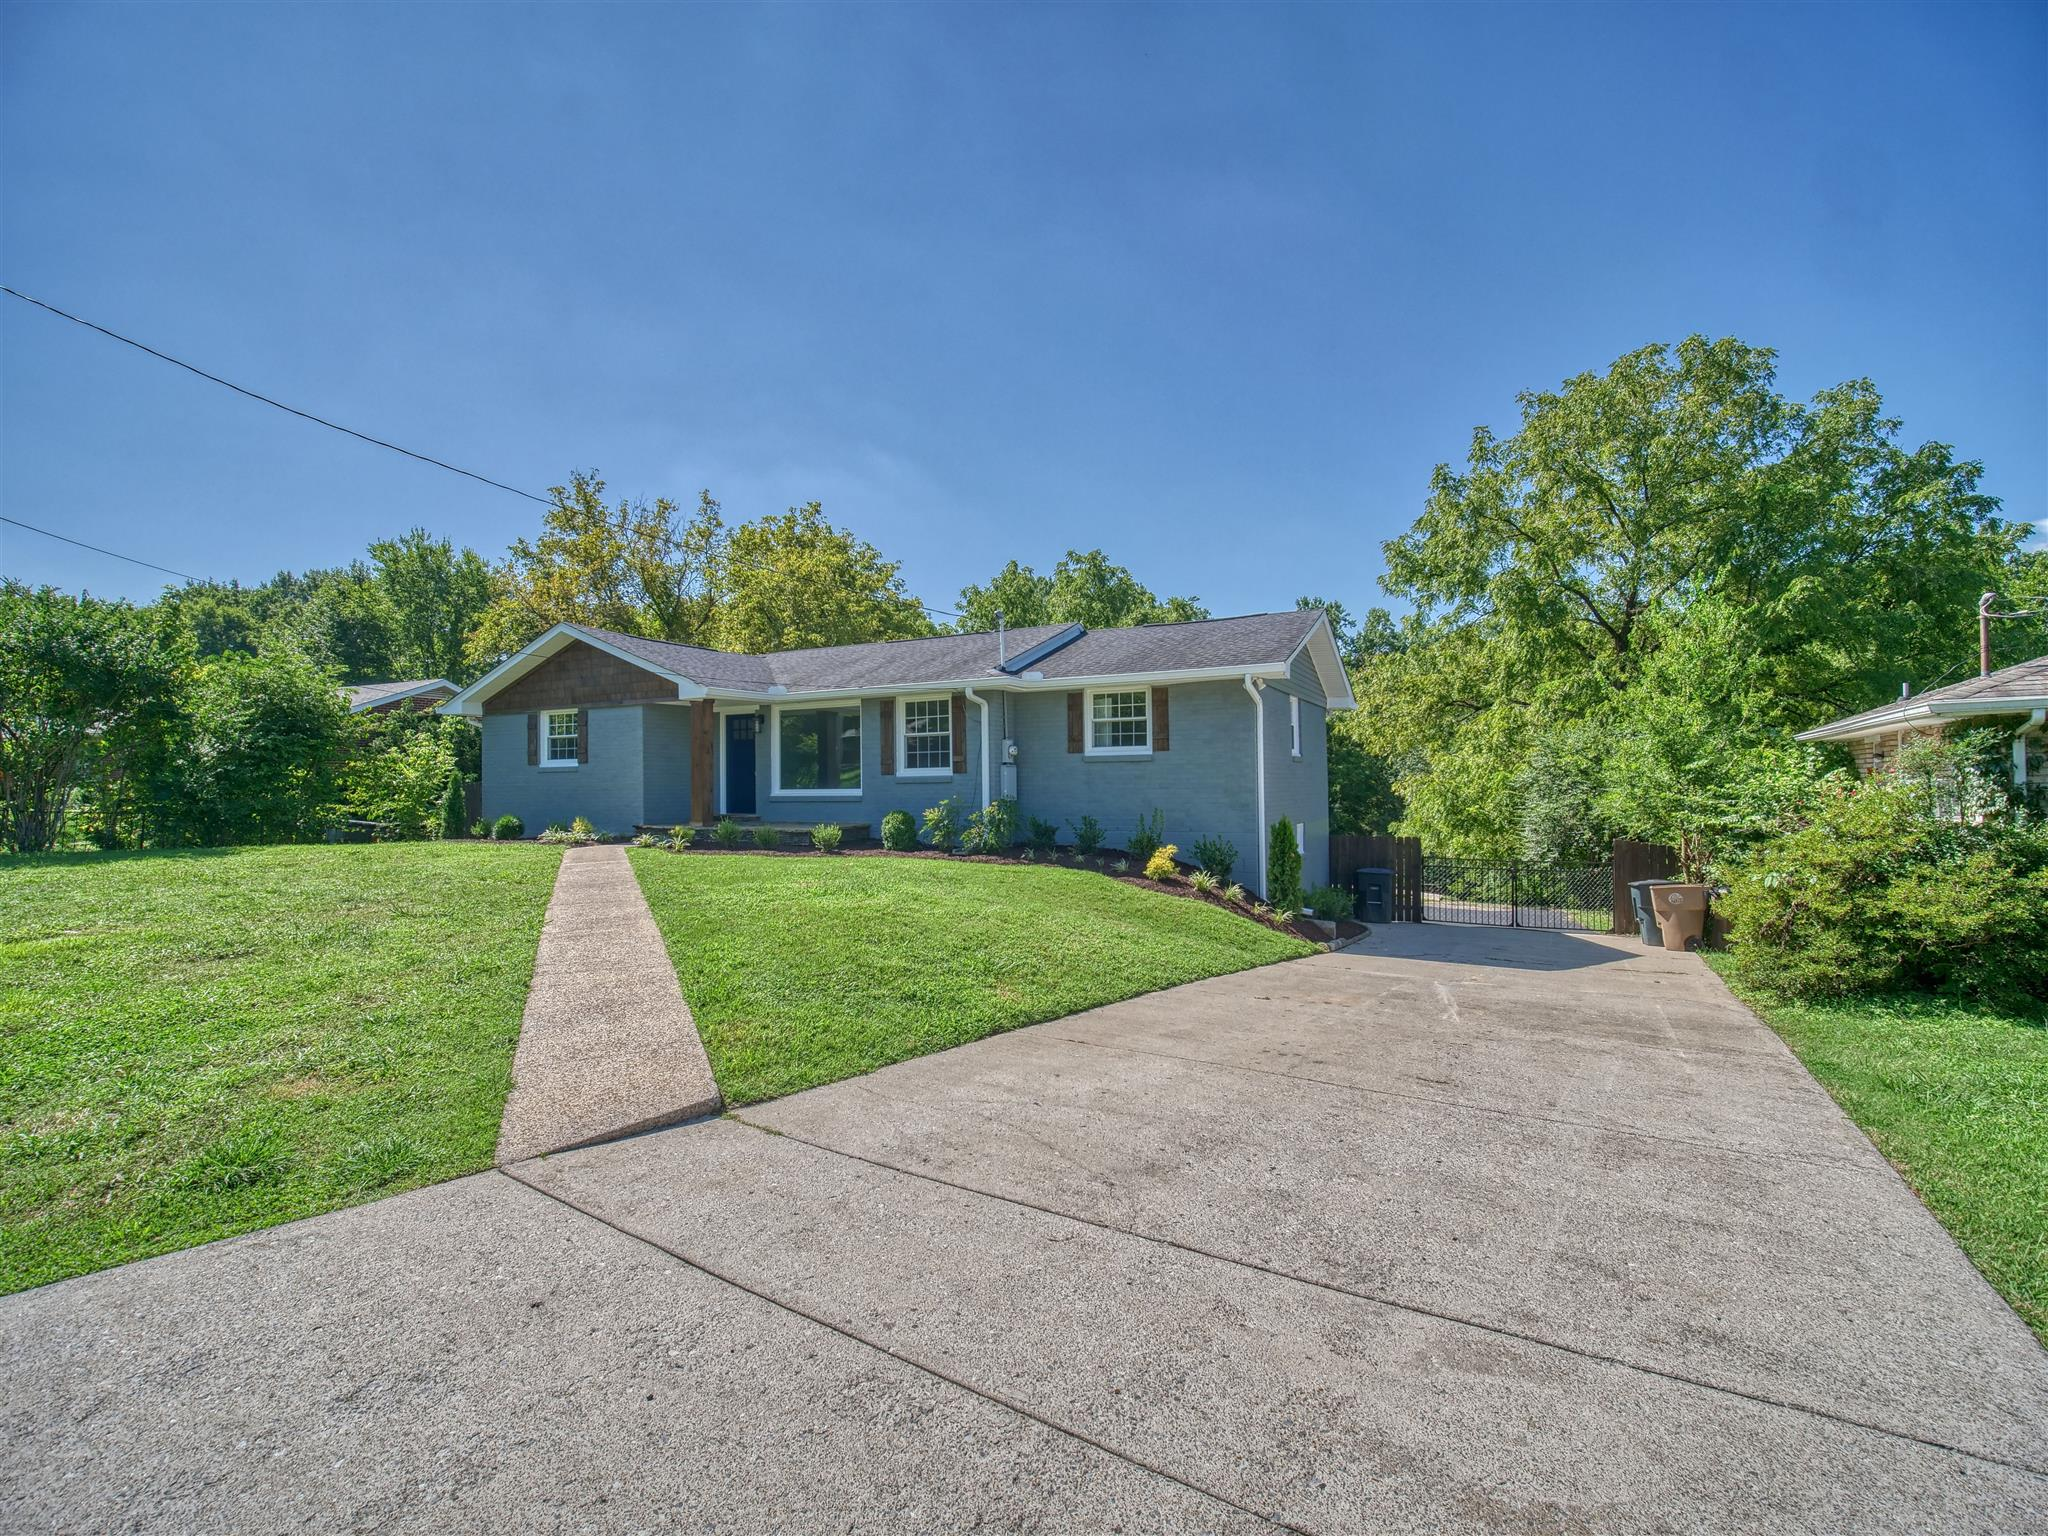 505 Northcrest Dr, Nashville, TN 37211 - Nashville, TN real estate listing